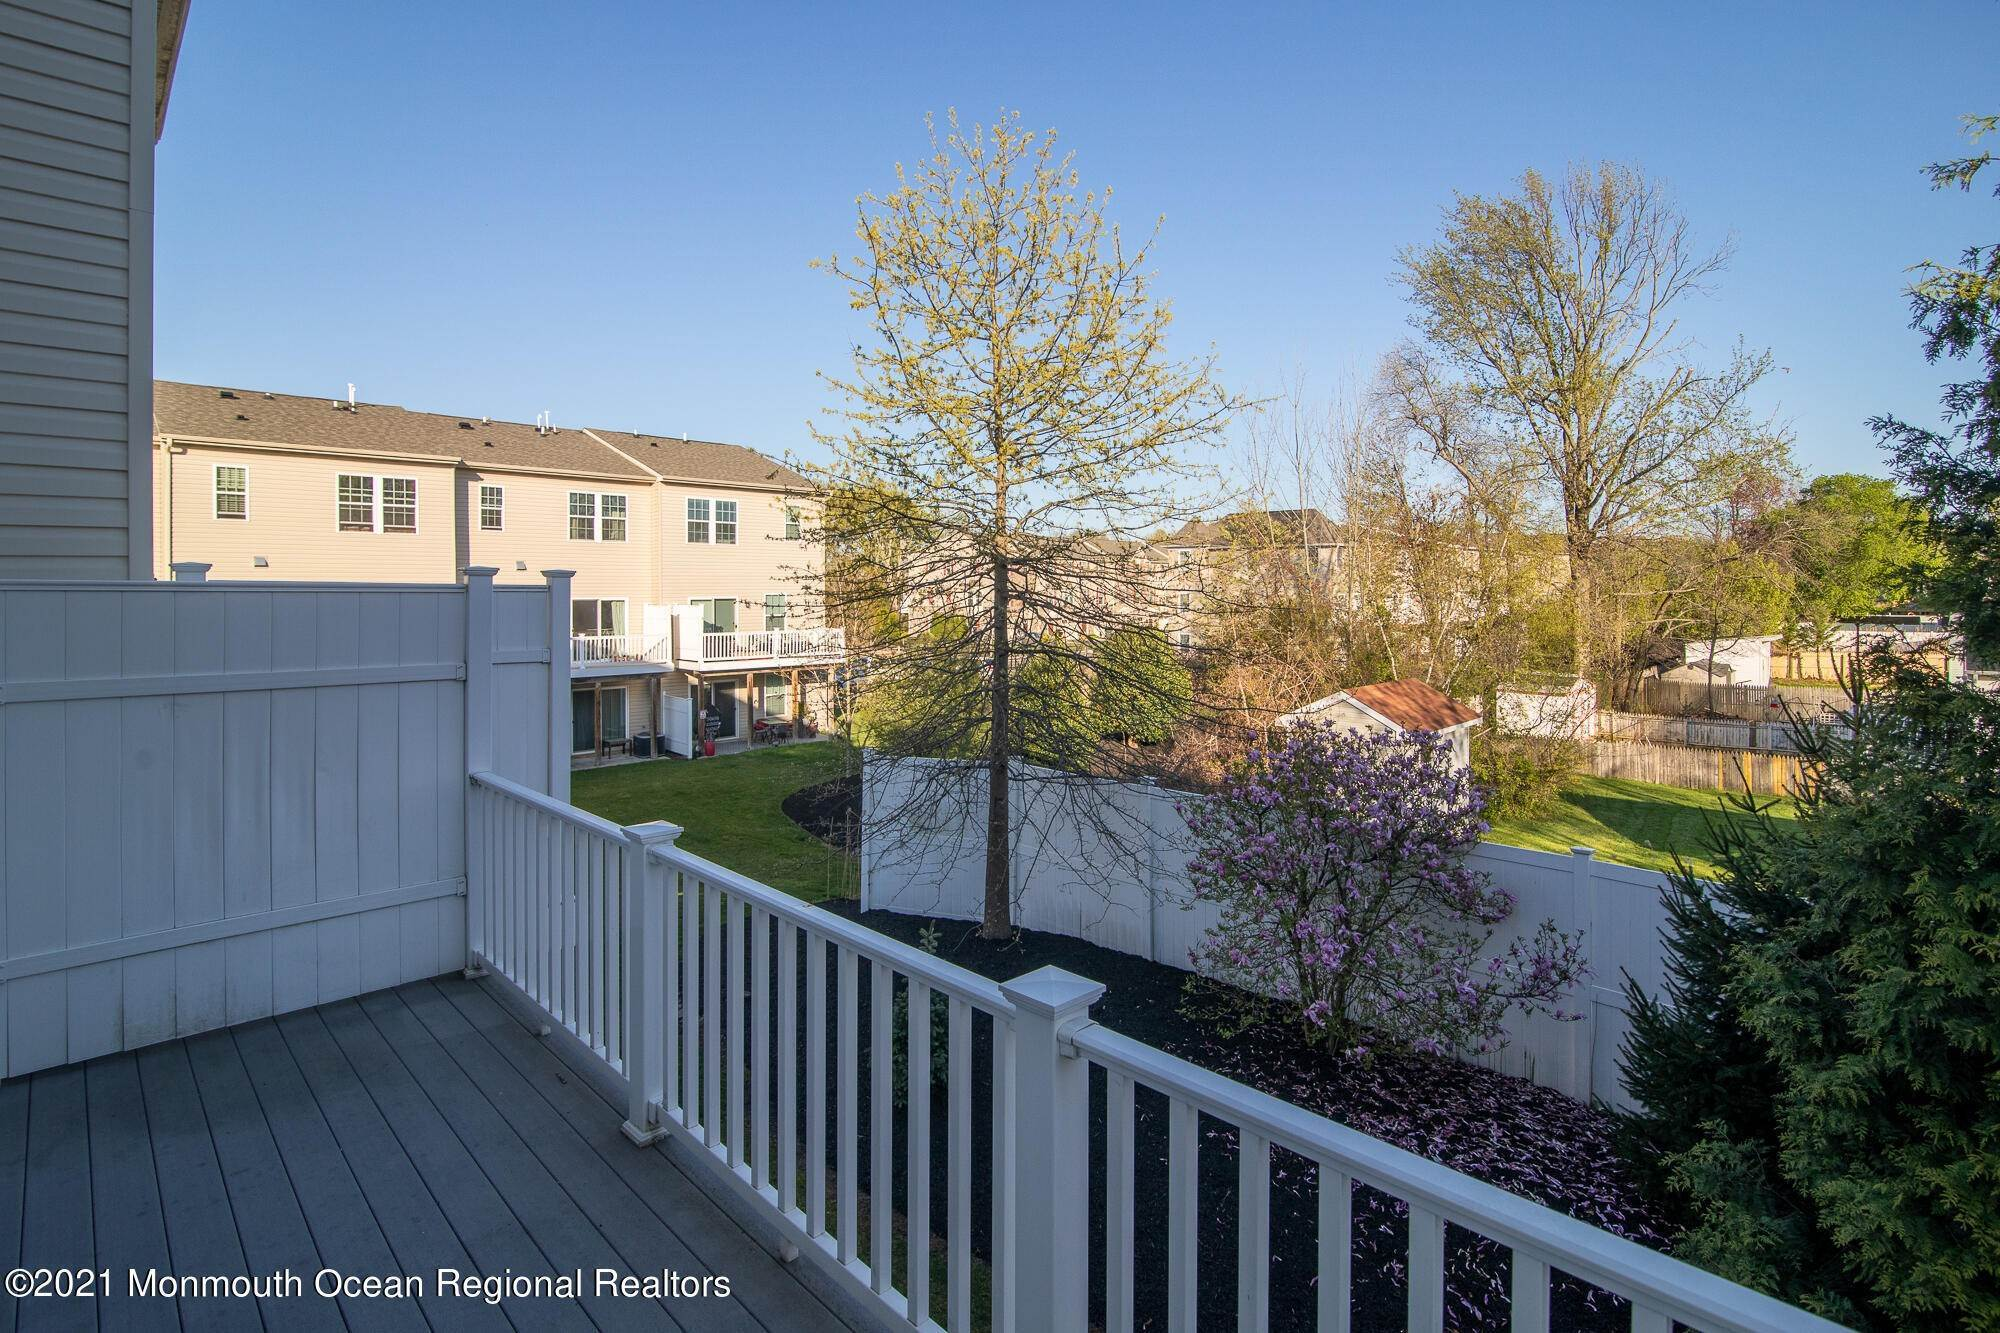 16. Condominiums for Sale at 106 Phillip E Frank Way Cliffwood, New Jersey 07721 United States